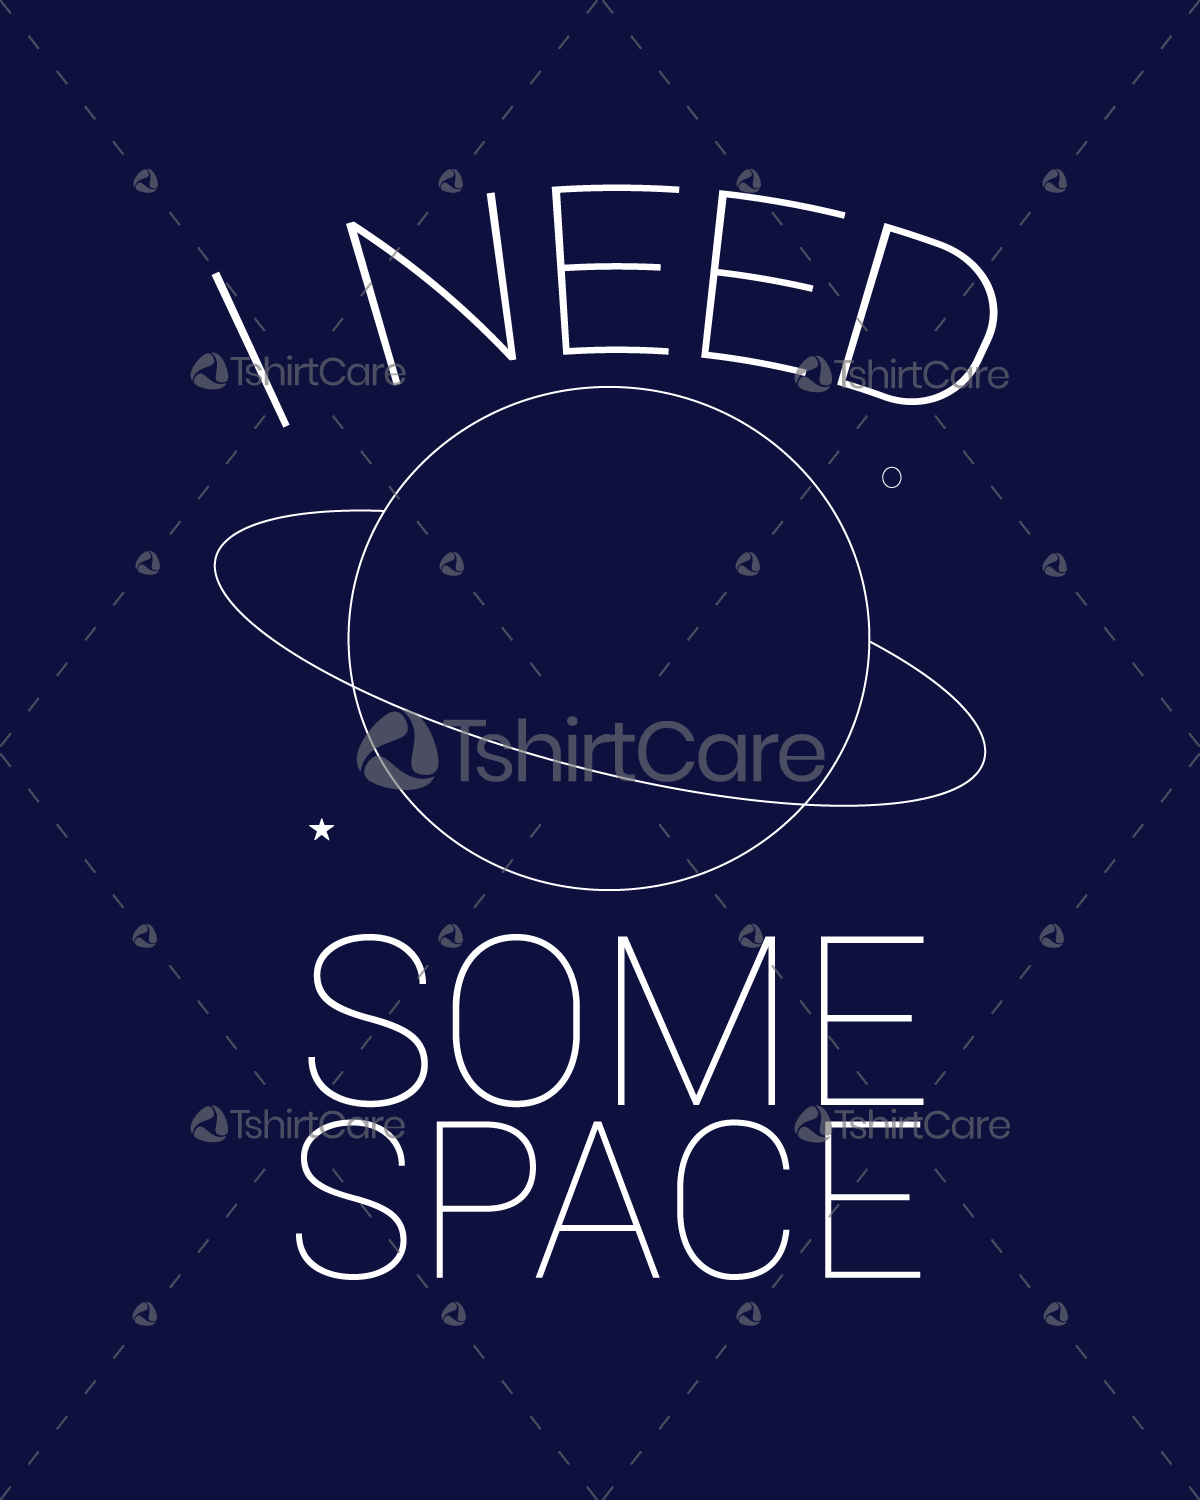 d2f0b474 I need some space T-Shirt Design i need some space shirt nasa For ...